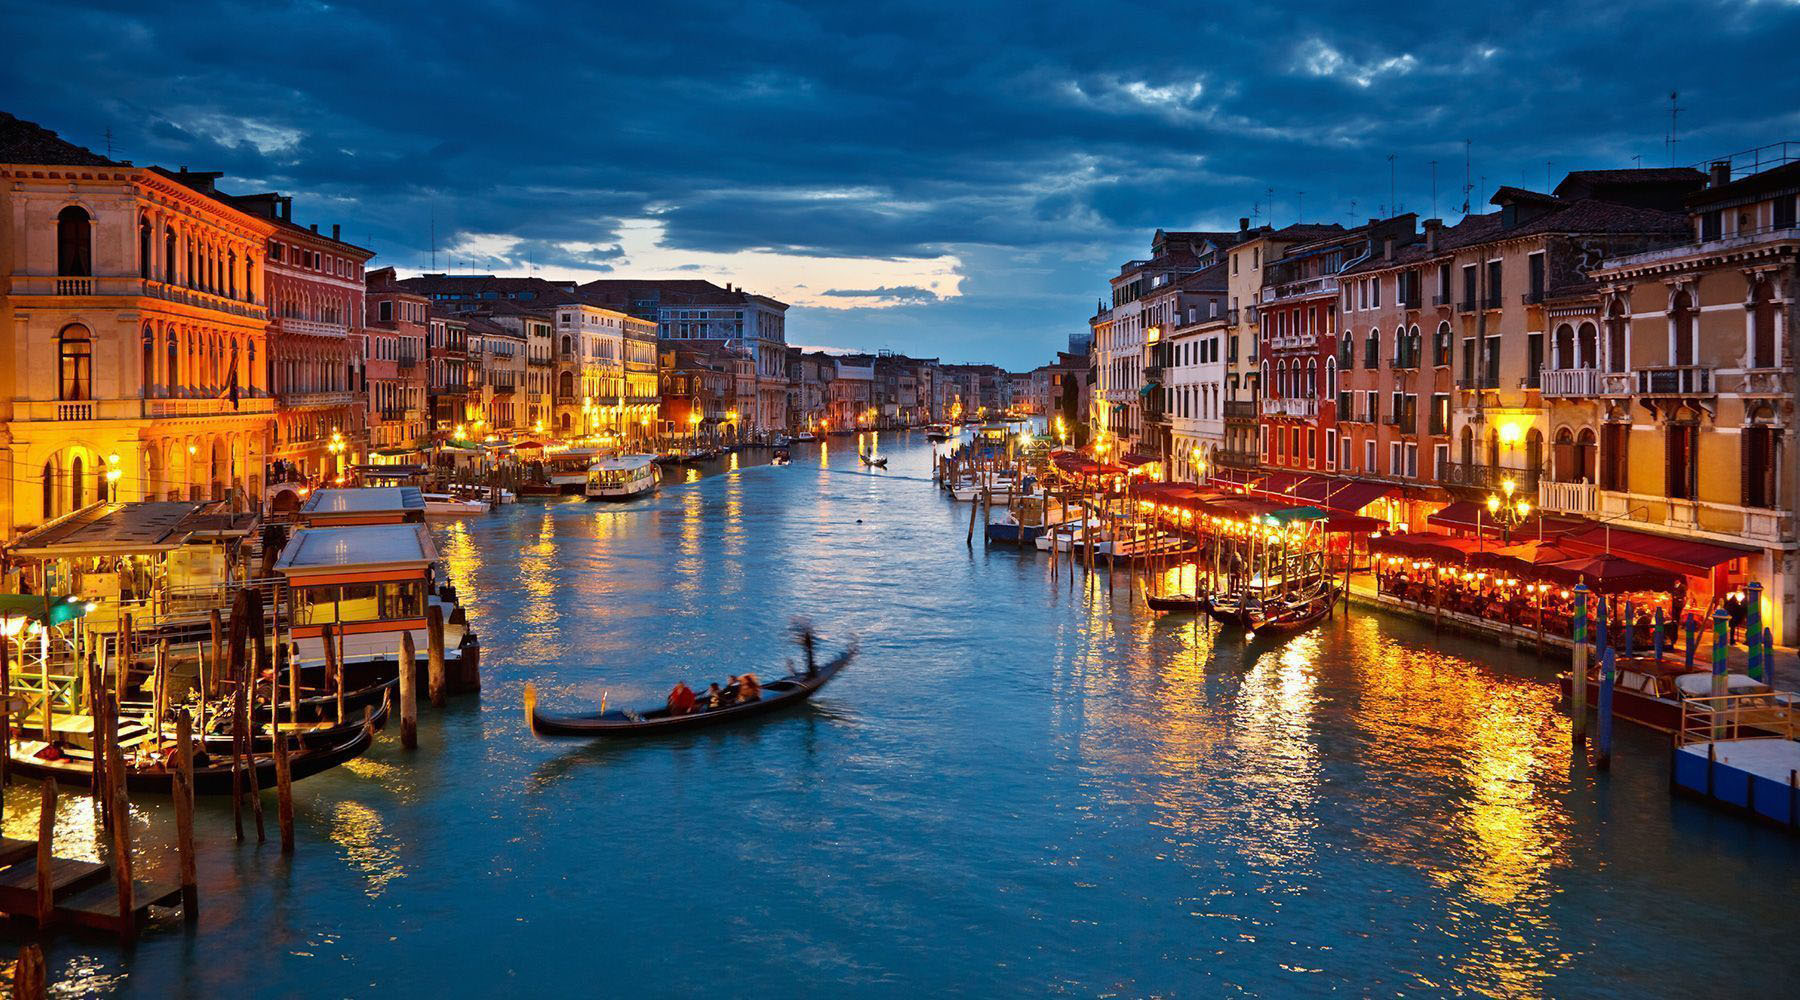 The canals of Venice Italy at night